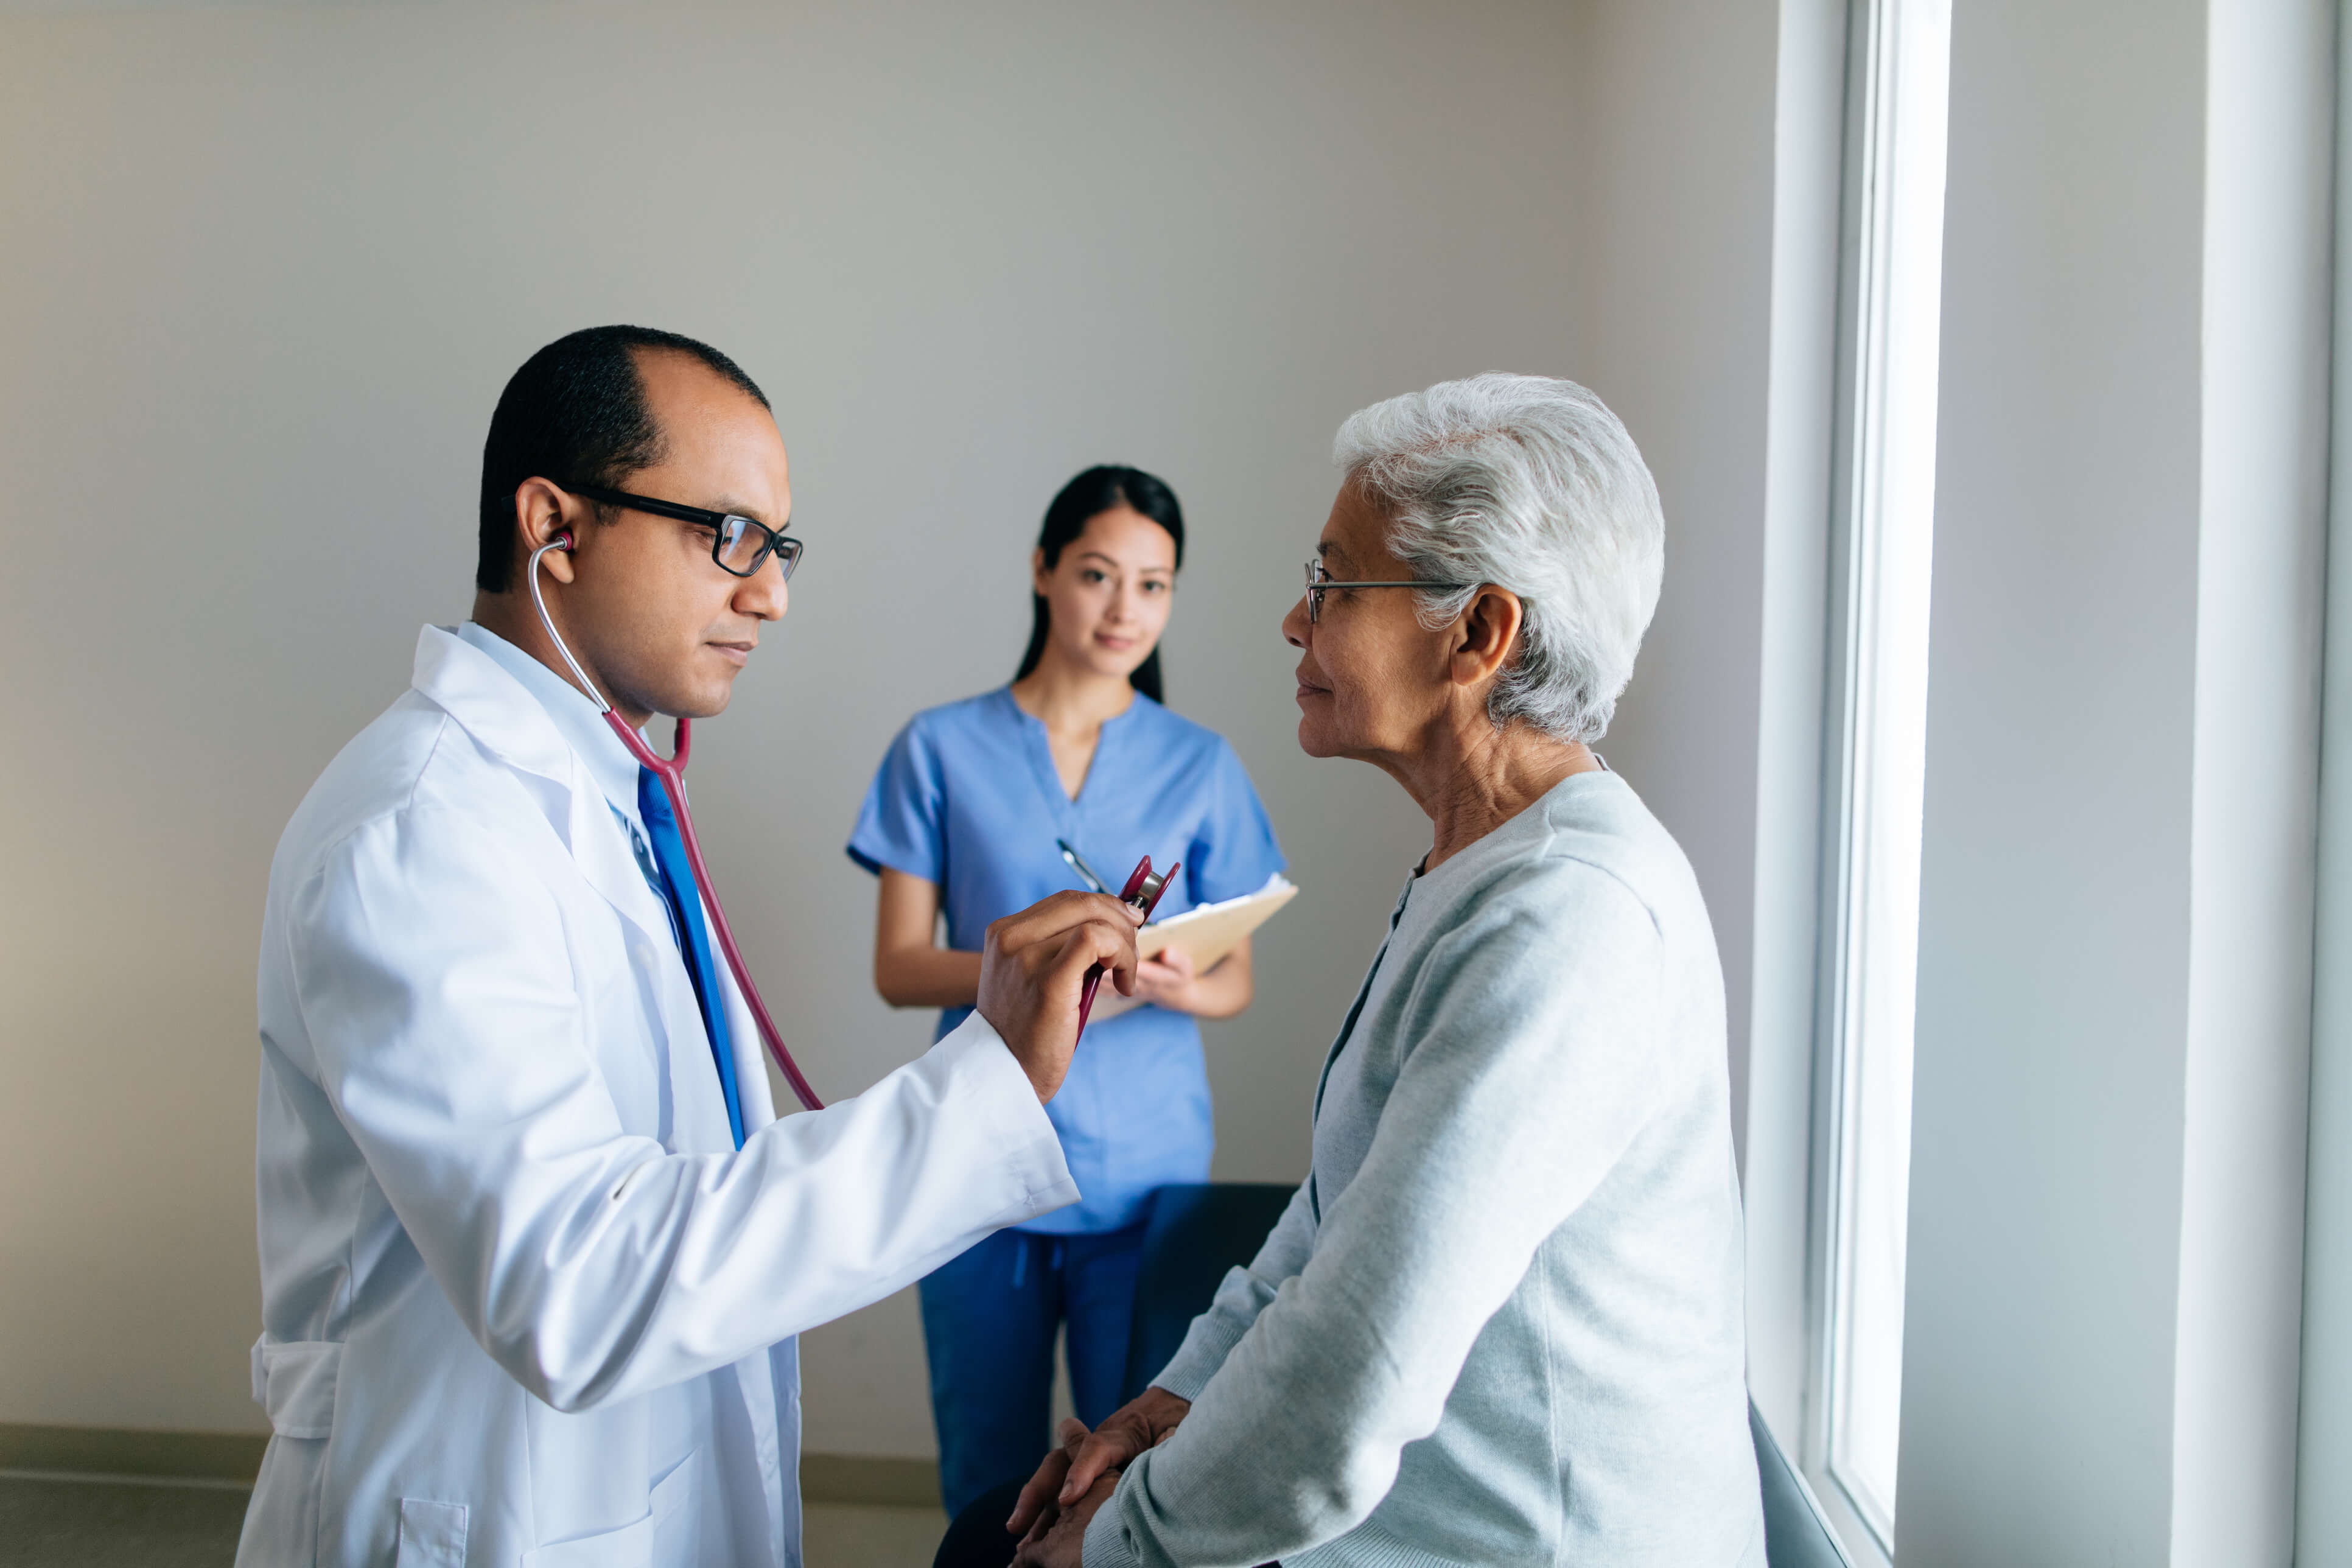 Male doctor consulting patient with Physician Assistant